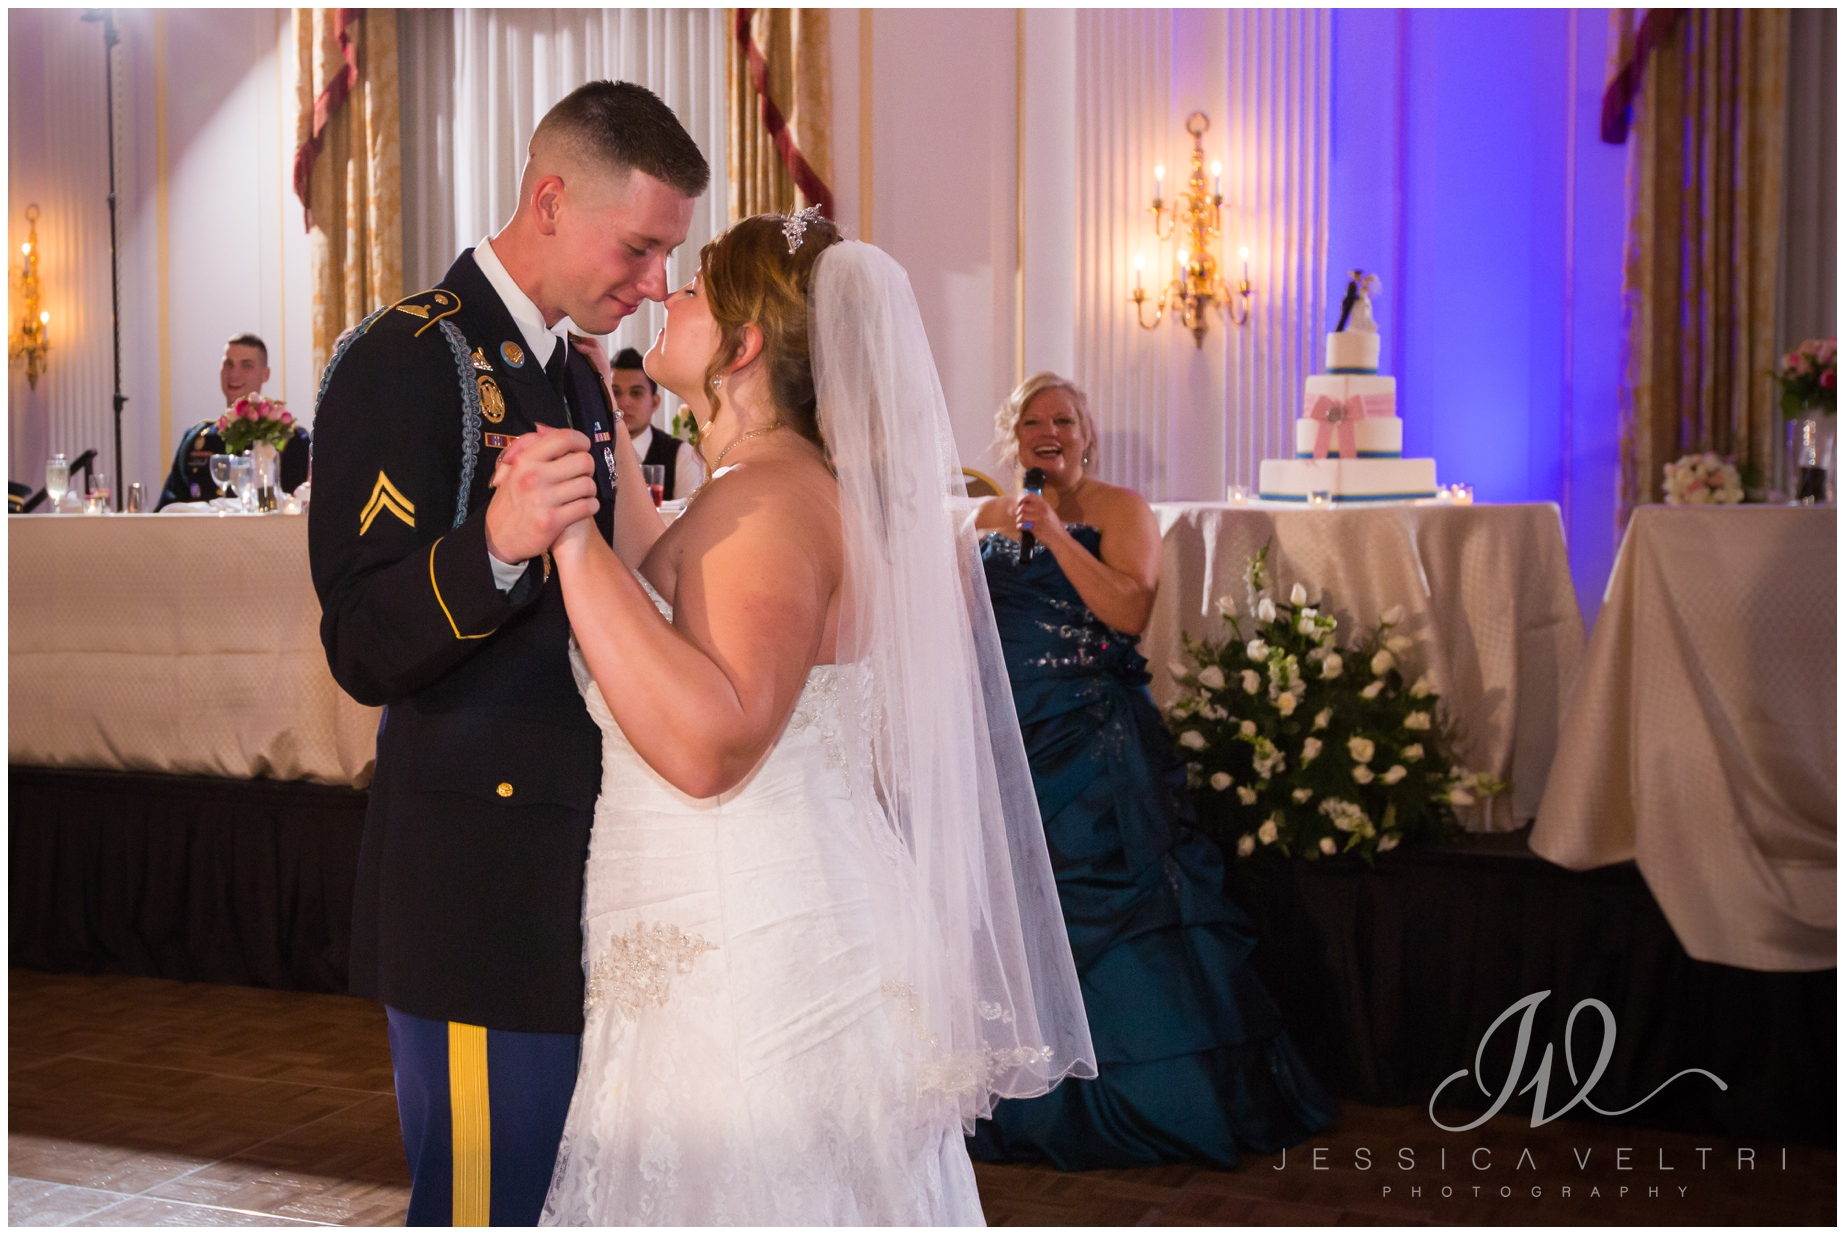 justin and stephanie,moshe zusman,second shoot,washington dc,wedding,